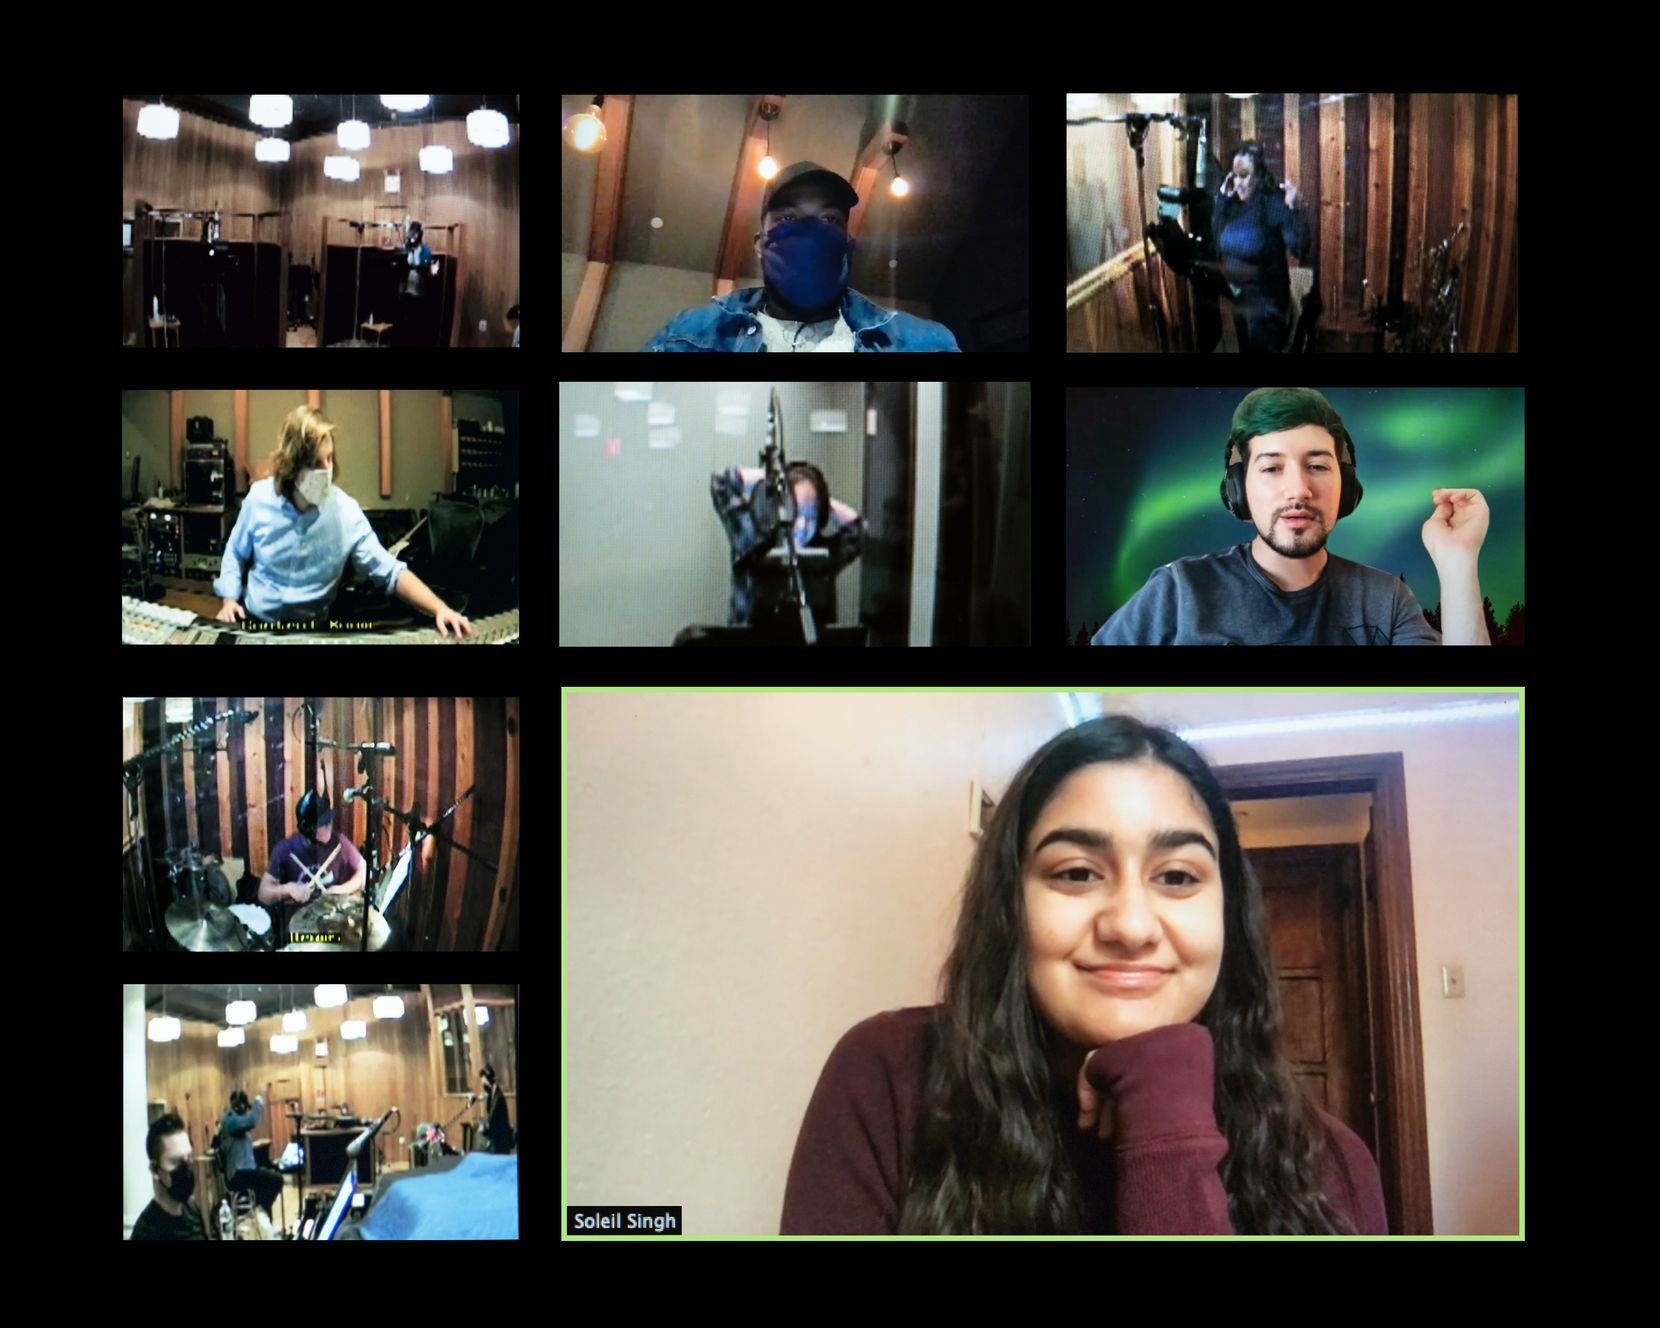 "Soleil Singh (lower right), in her New Haven, Conn., dorm room, watches the recording of her winning song, ""Love In the Scene,"" via Zoom from Reservoir Studios in New York City. Also pictured in the collage are her music director, Allen Rene Louis (top row, center) and her mentor Max Vernon (second row, right)."